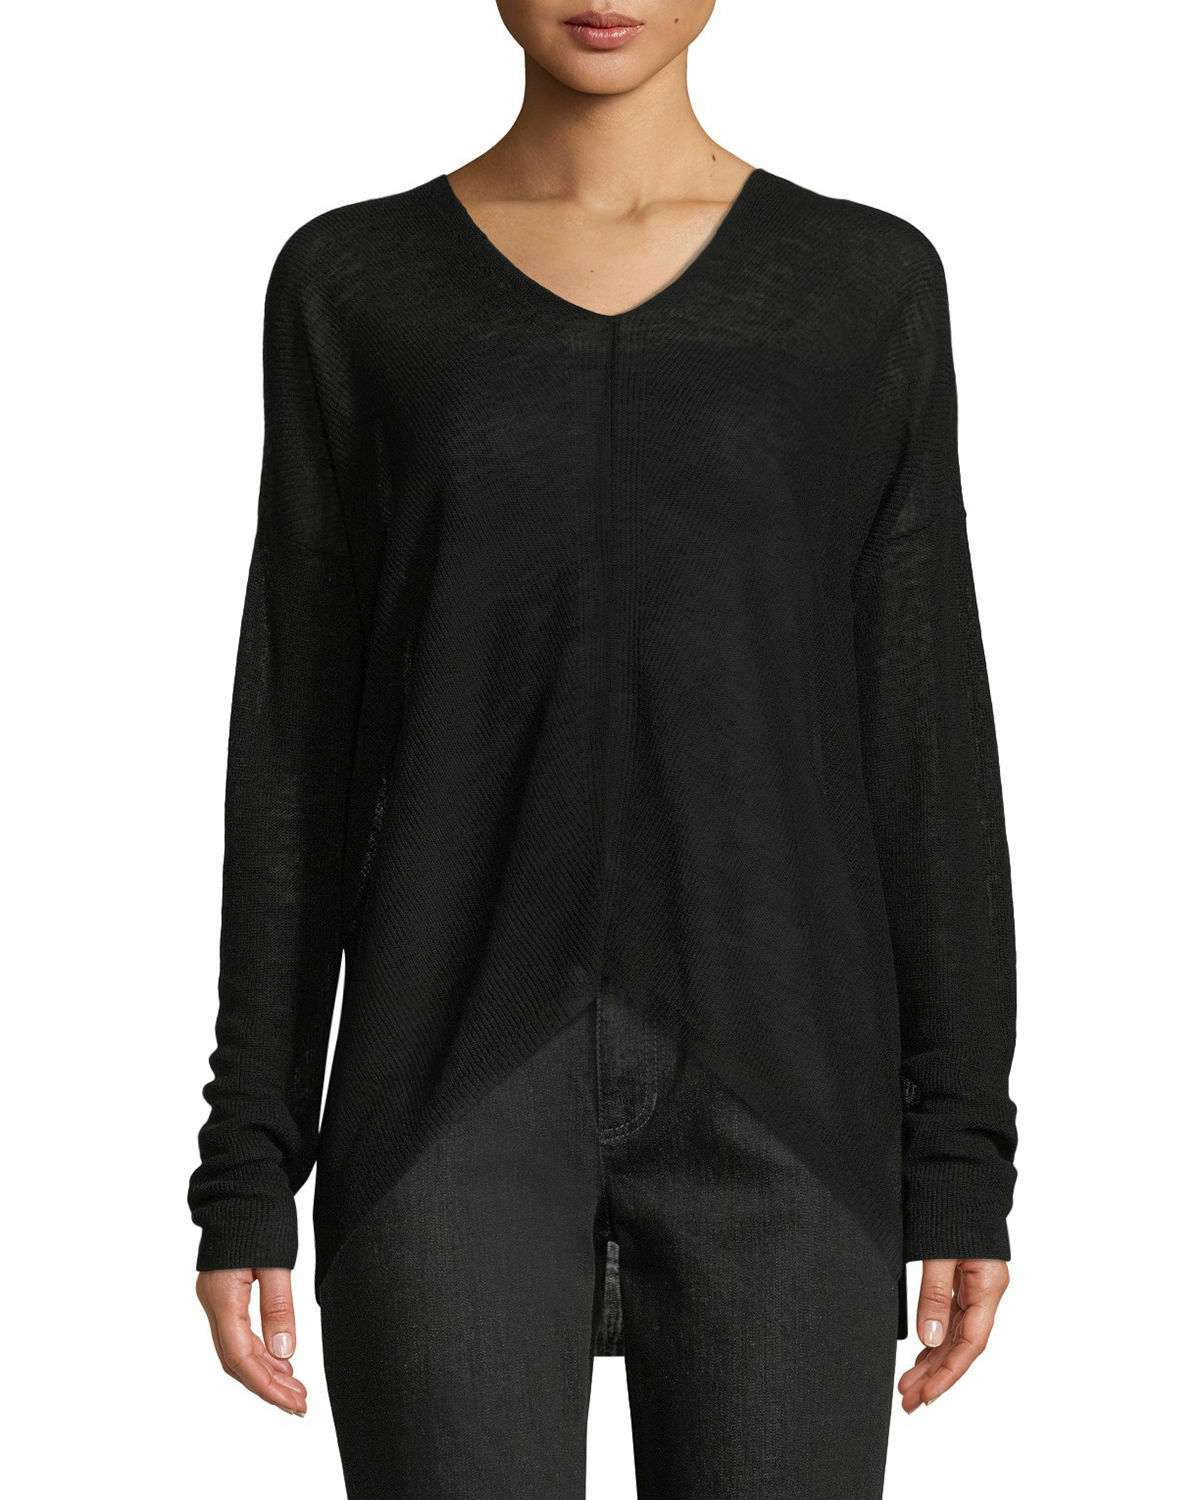 NWT Eileen Fisher Organic Linen Lyocell Box Sweater in Black - Size S  S1296